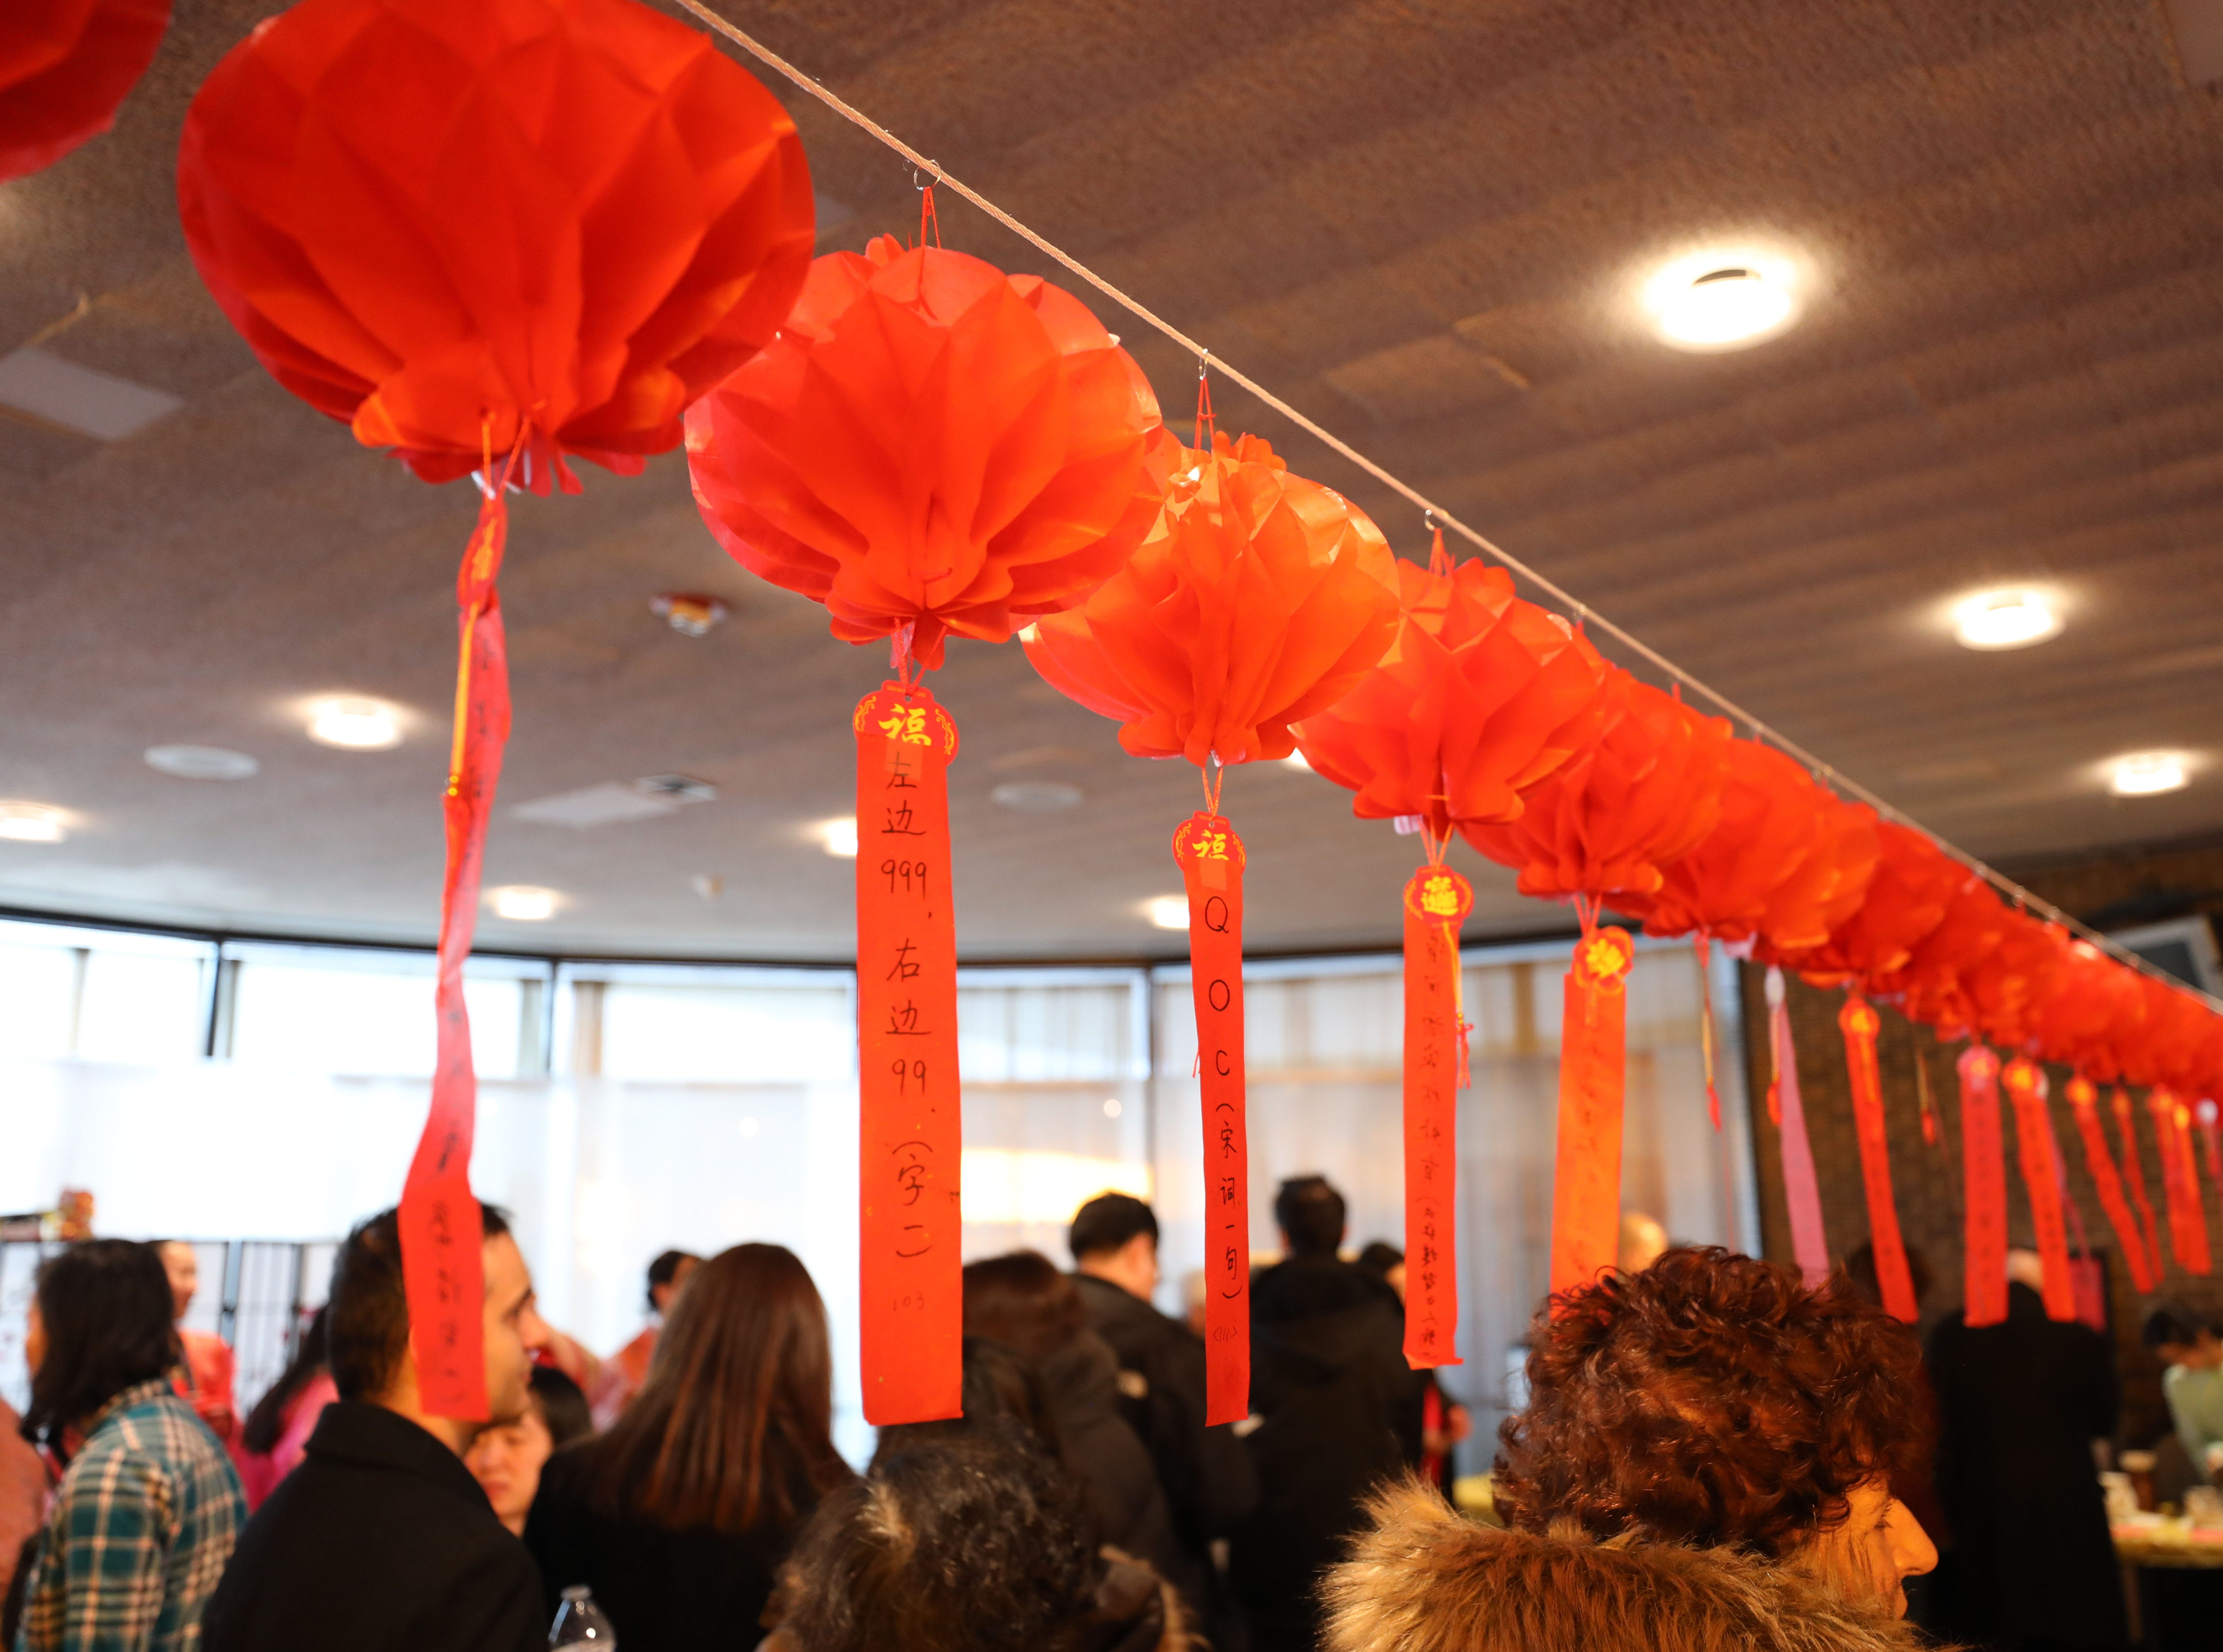 Lanterns with Chinese puzzles, hang from a cord during the 30th Chinese New Year Festival, the Year of the Pig, sponsored by WACA (Westchester Association of Chinese Americans), at The Performing Arts Center at Purchase College SUNY, Feb. 9, 2019.